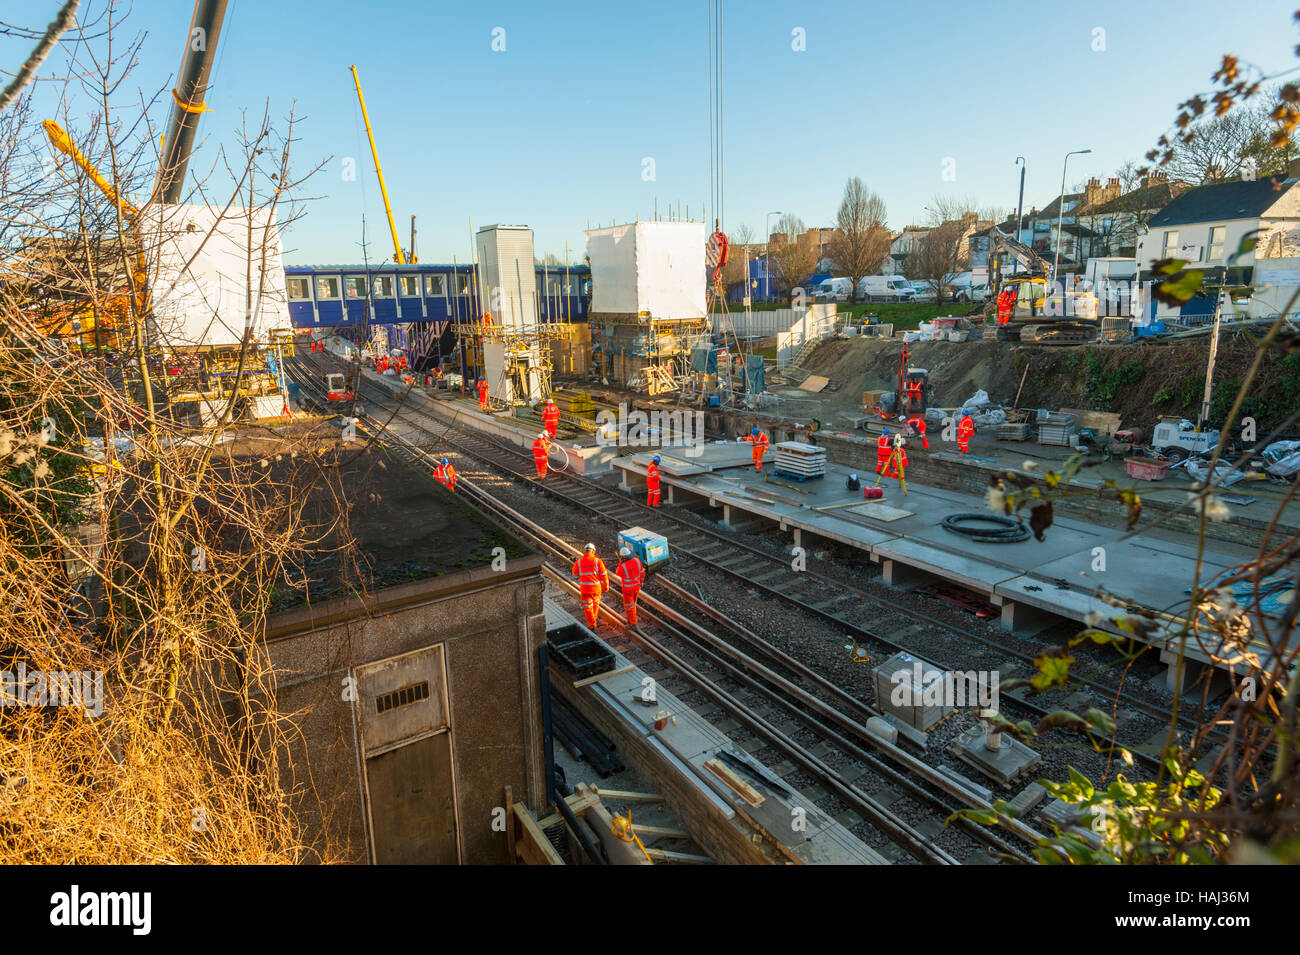 Engineering work to rebuild the station at Gravesend over Christmas 2013 - Stock Image